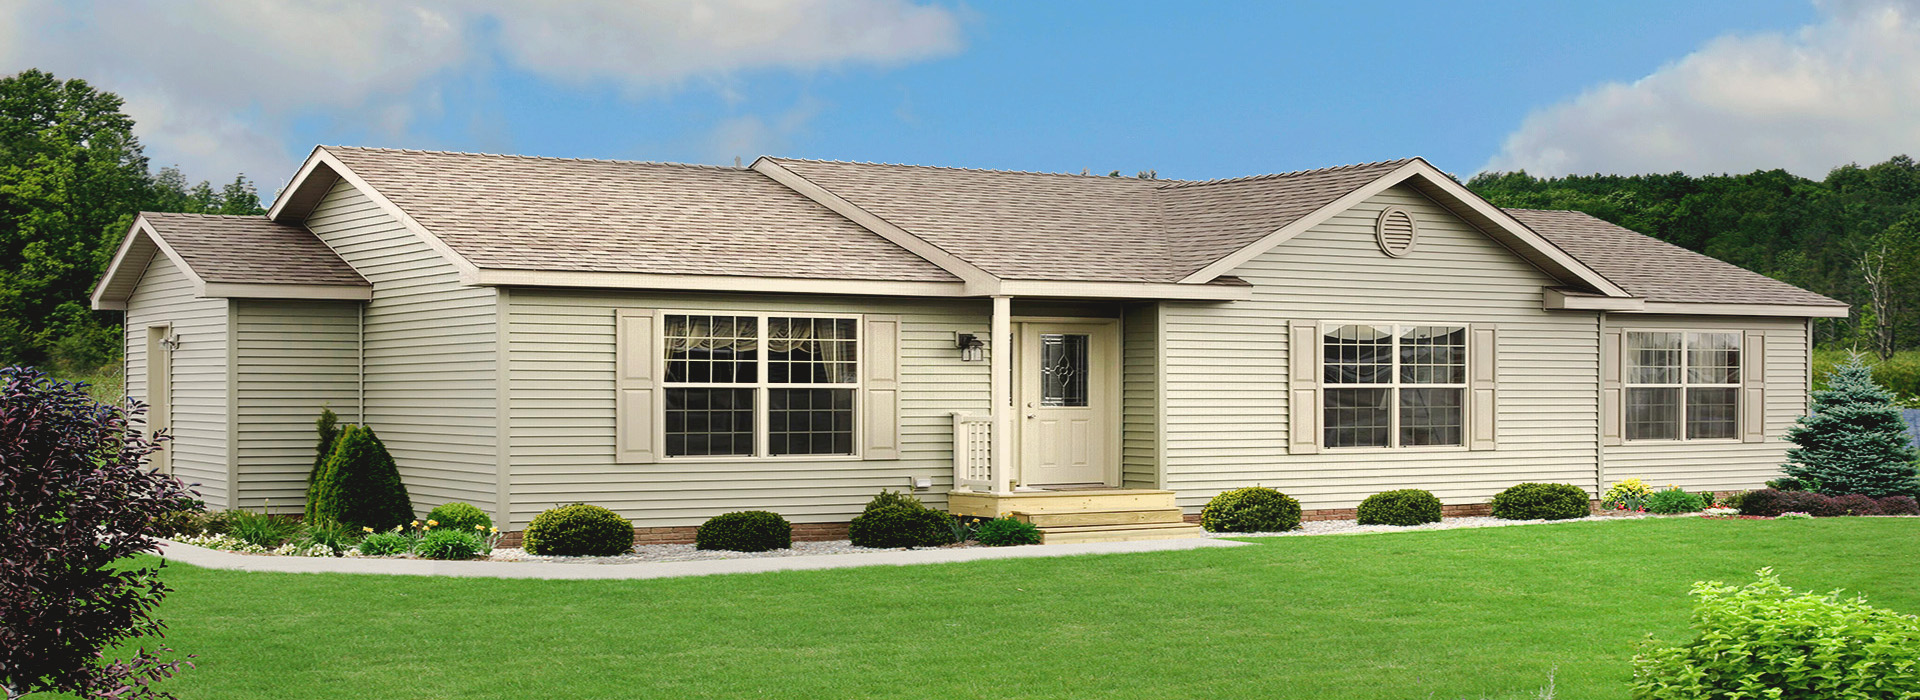 Shop new modular ranch homes for New ranch homes